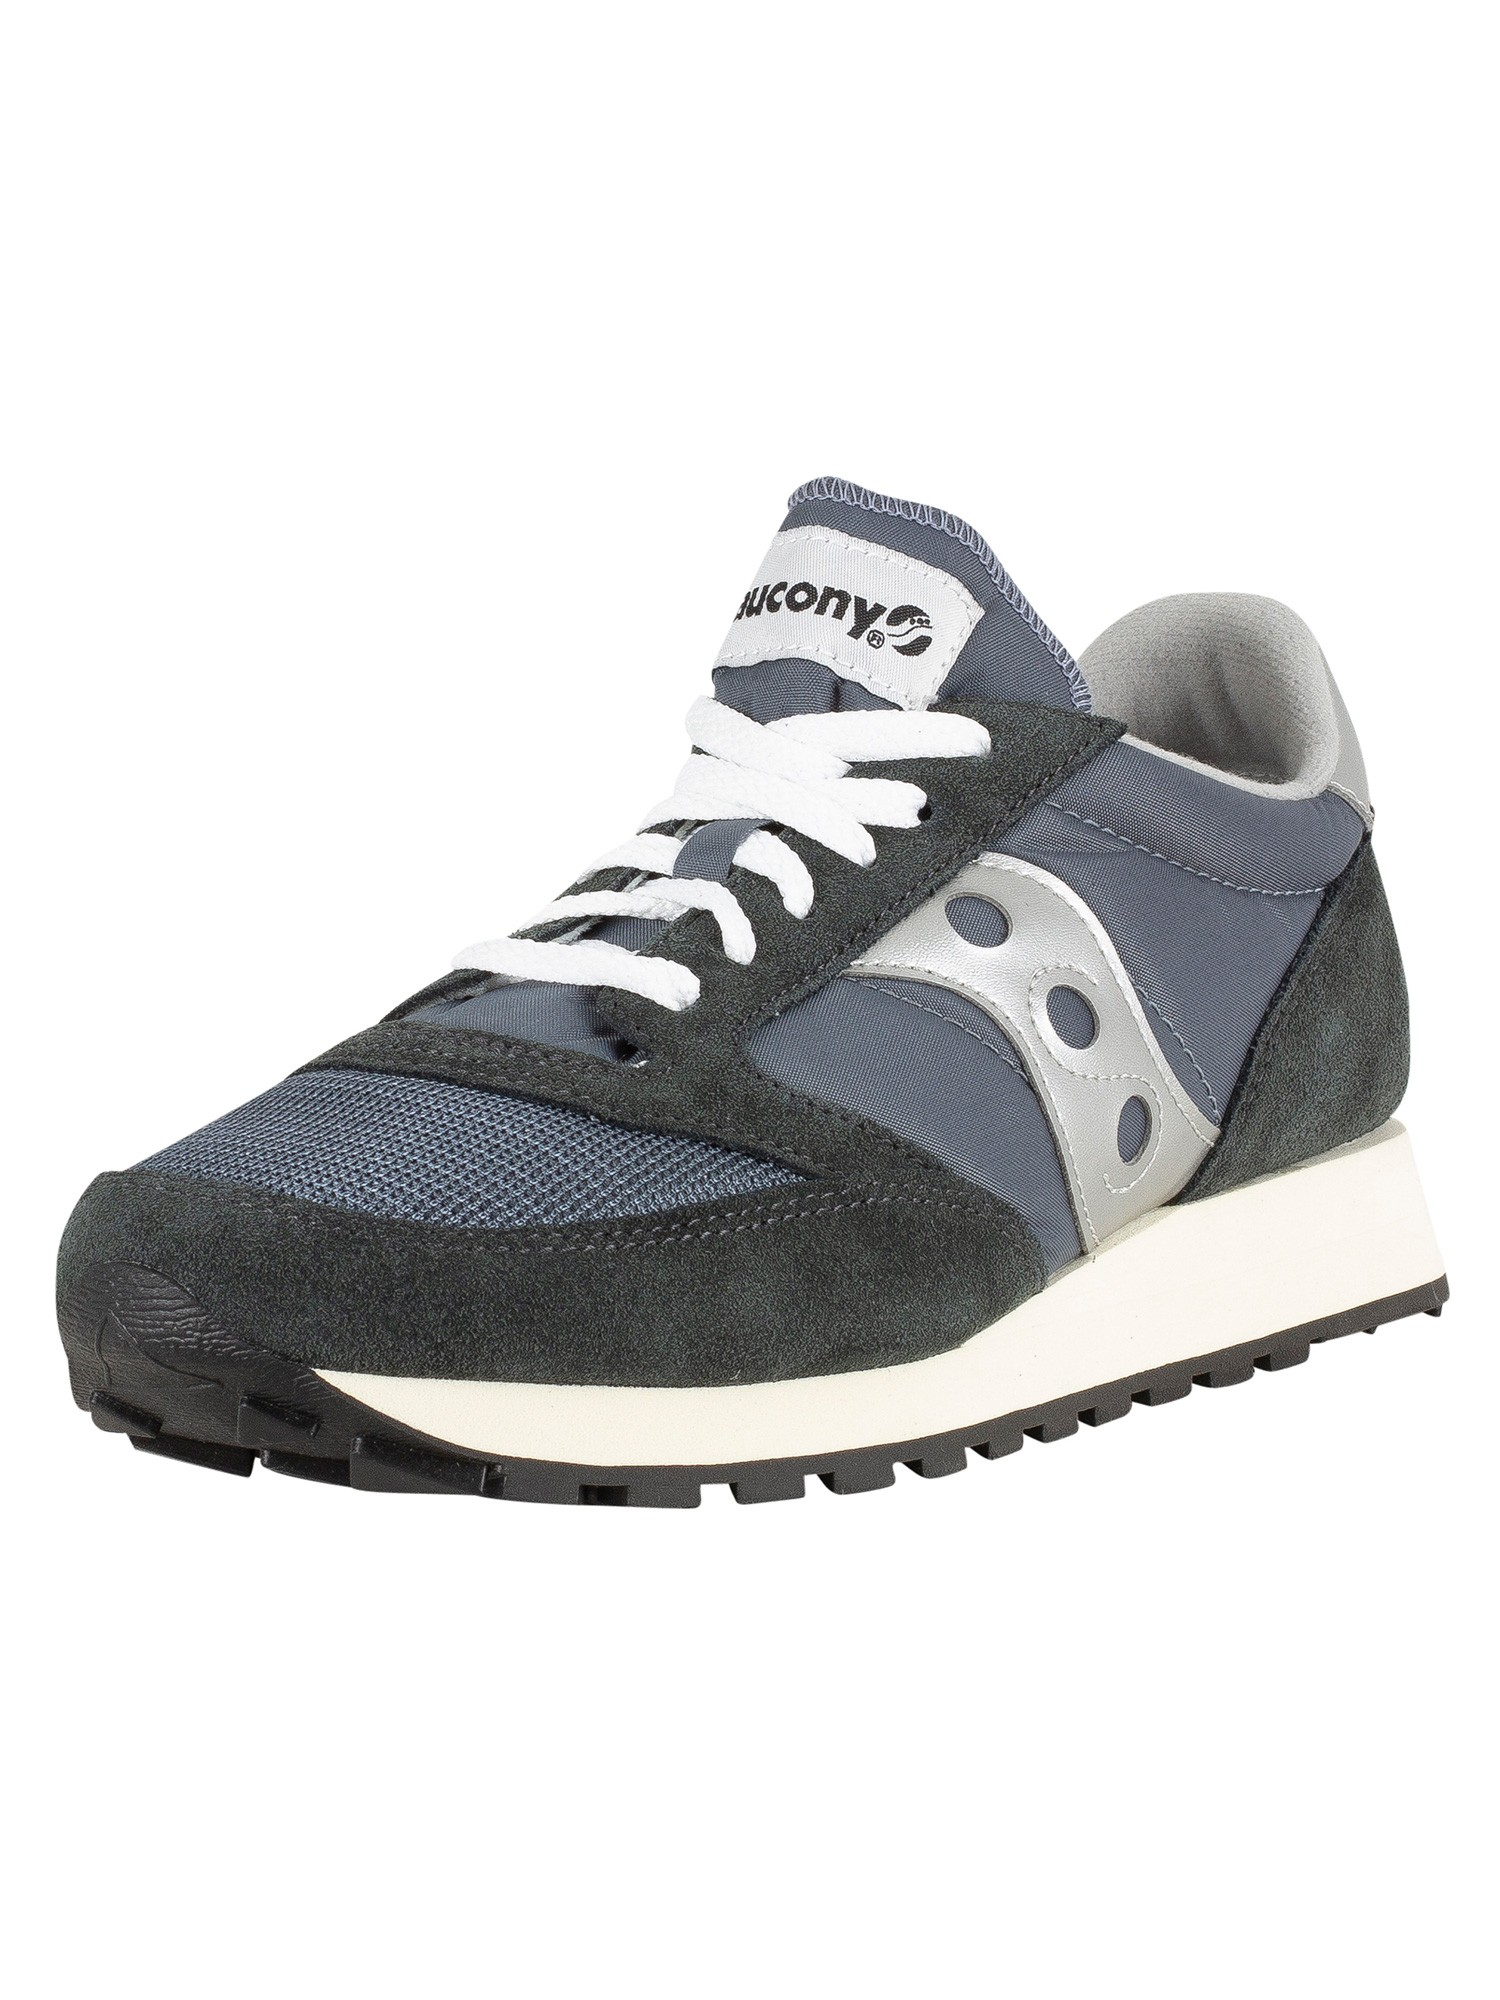 official photos 29eeb d07eb Saucony Jazz Original Vintage Trainers - Blue/Navy/Silver